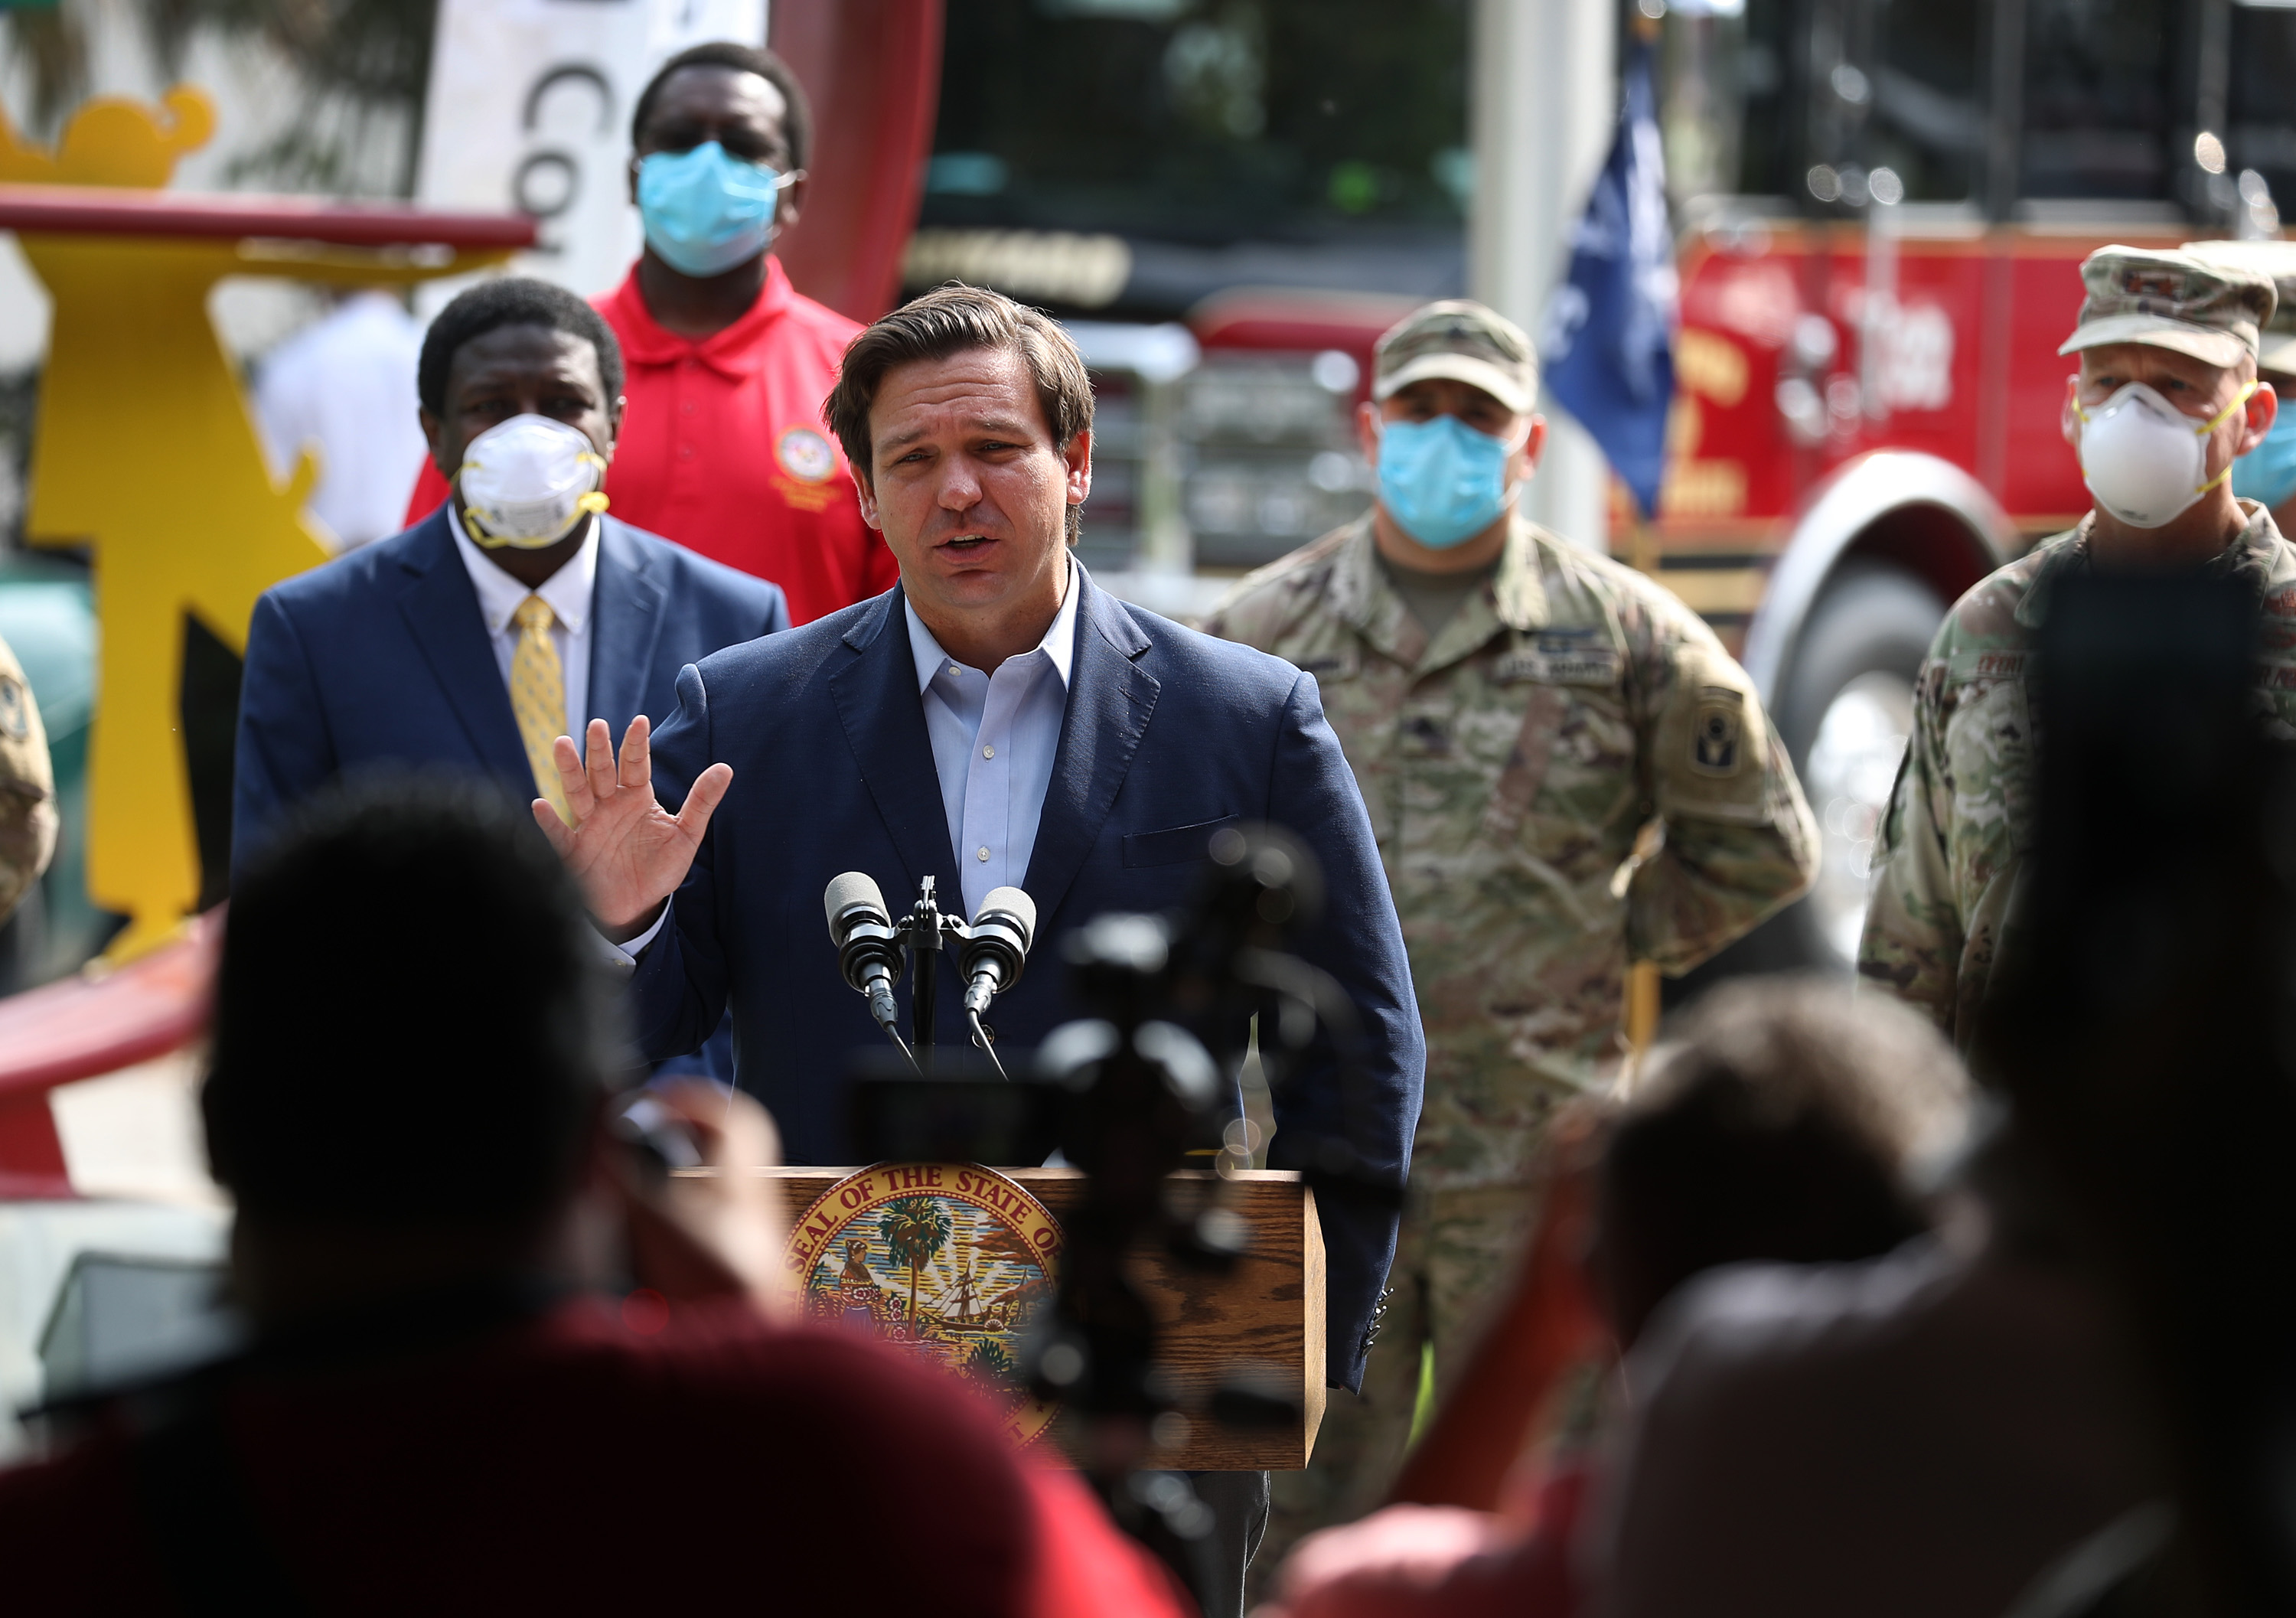 Florida Governor Ron DeSantis Holds Media Briefing On Coronavirus Outbreak